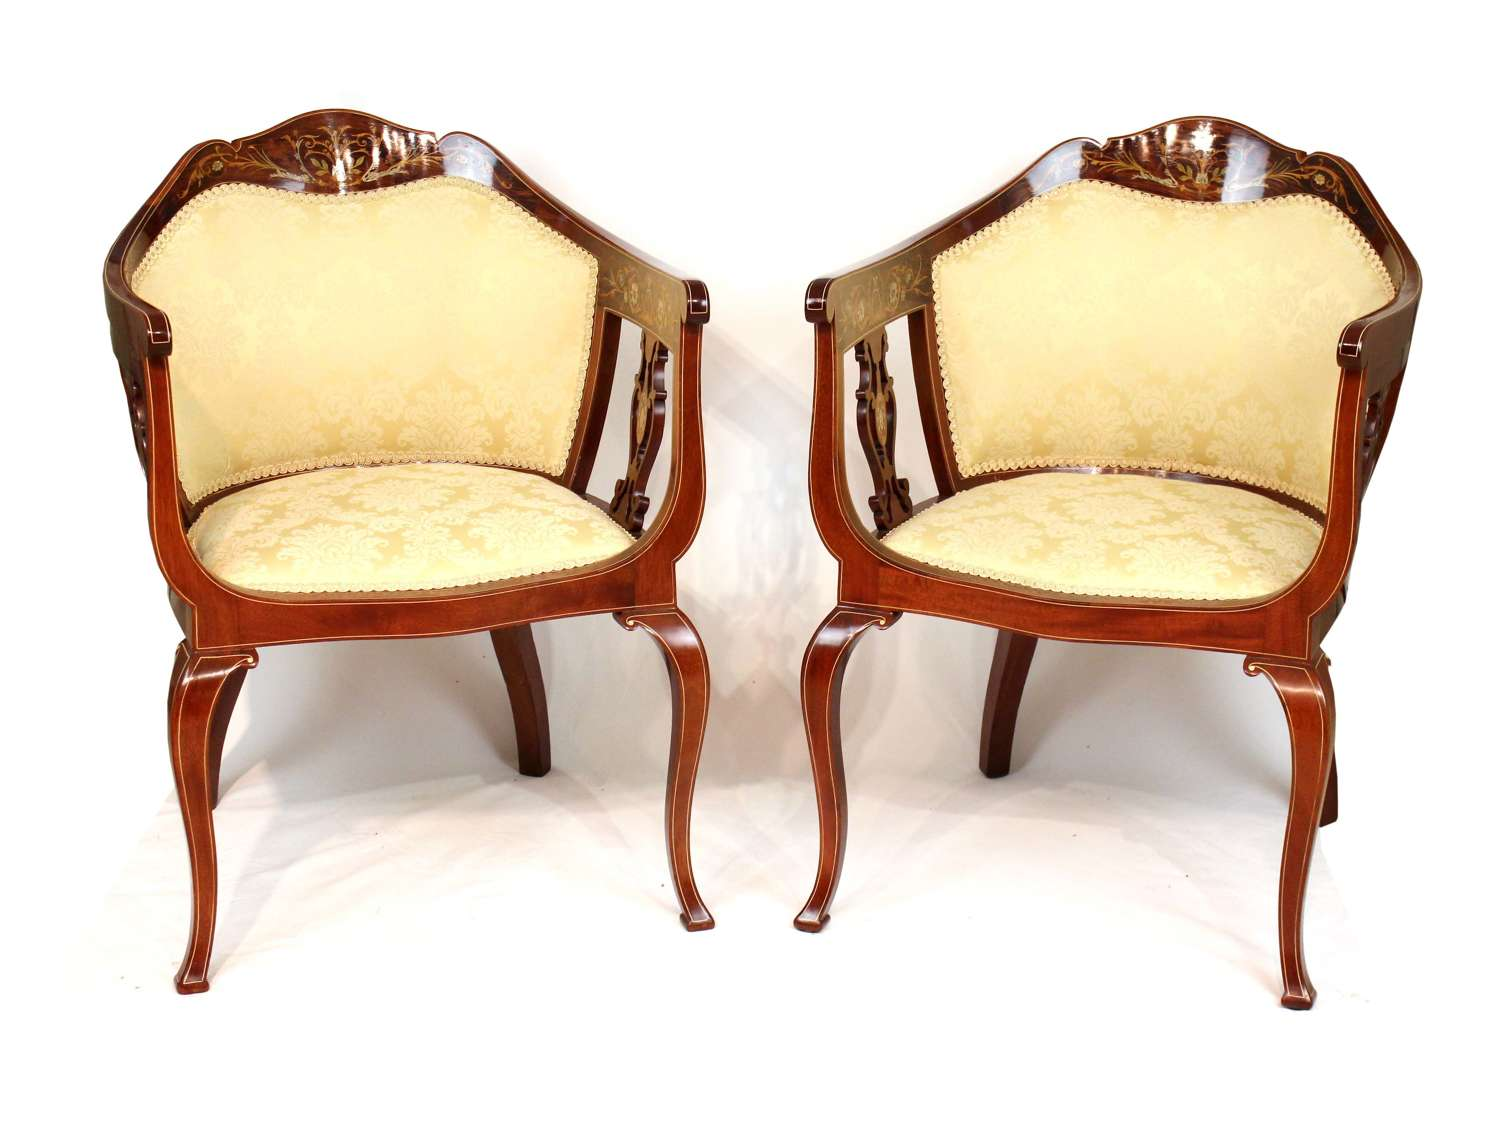 A Quality Pair of Late Victorian Mahogany Inlaid Tub Chairs